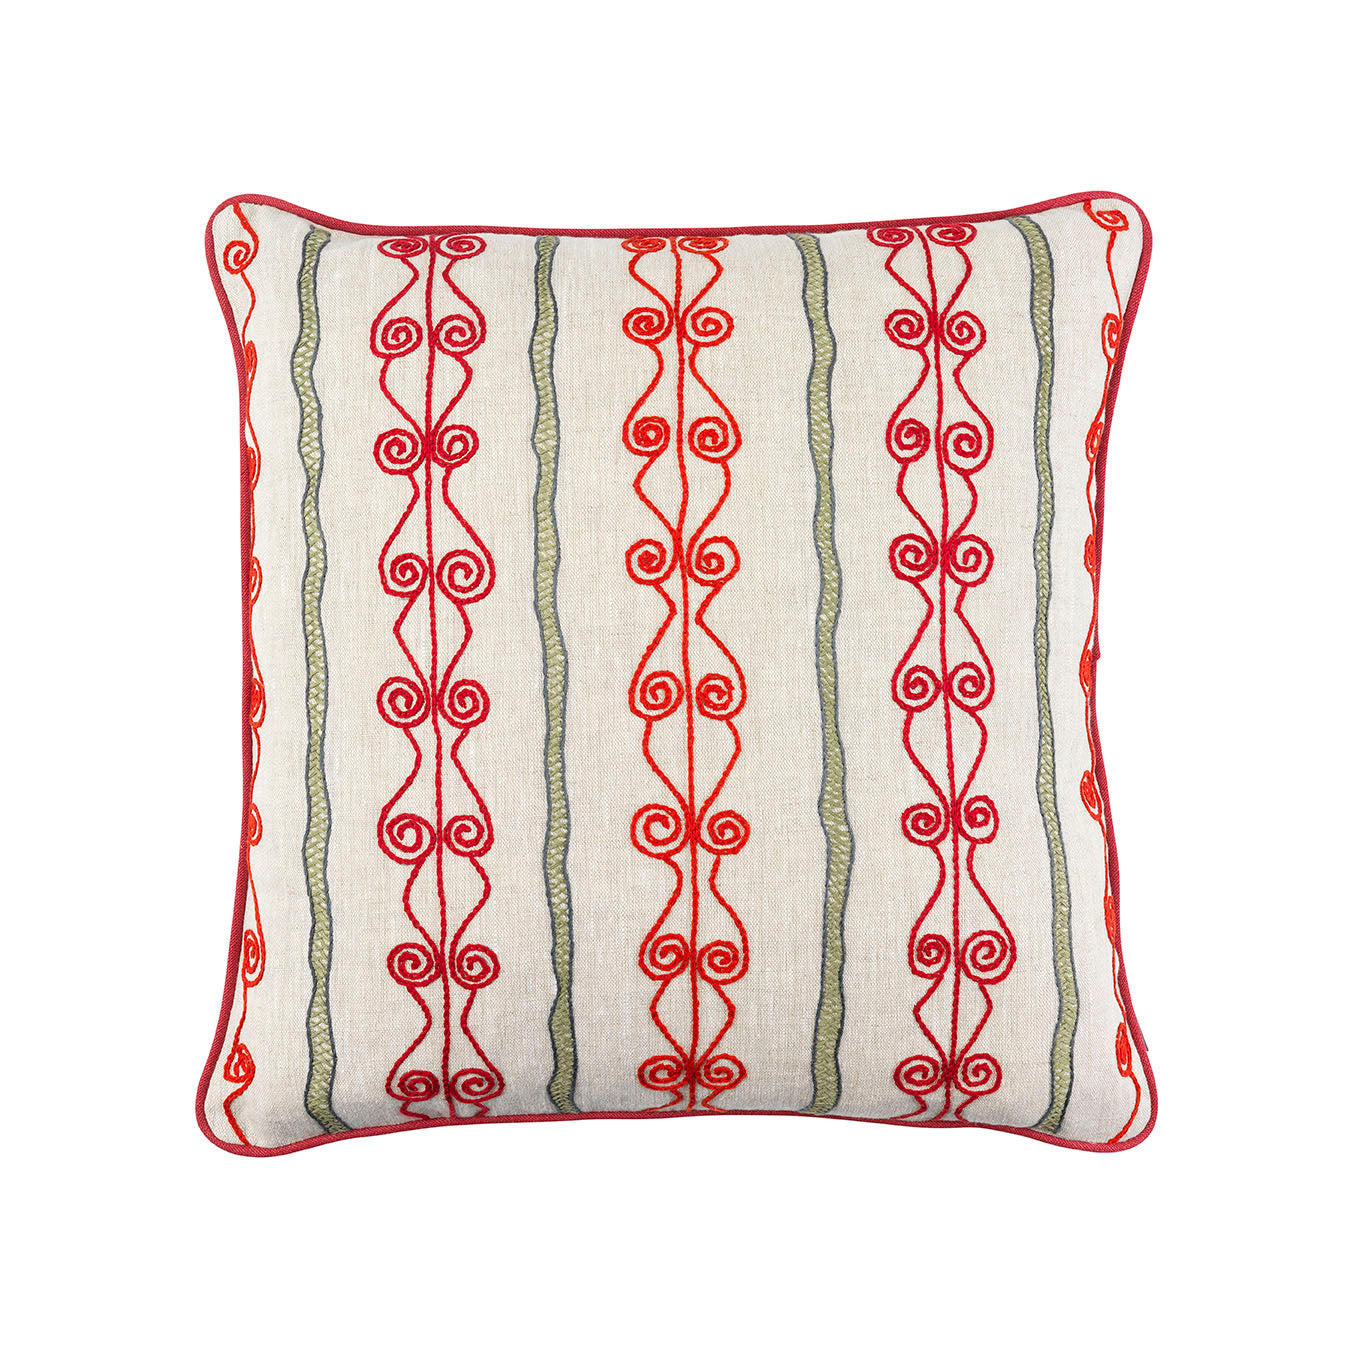 Melissa Wyndham Robert Stephenson Kit Kemp for Fine Cell Work Brunel Embroidered Cushion Red and Green